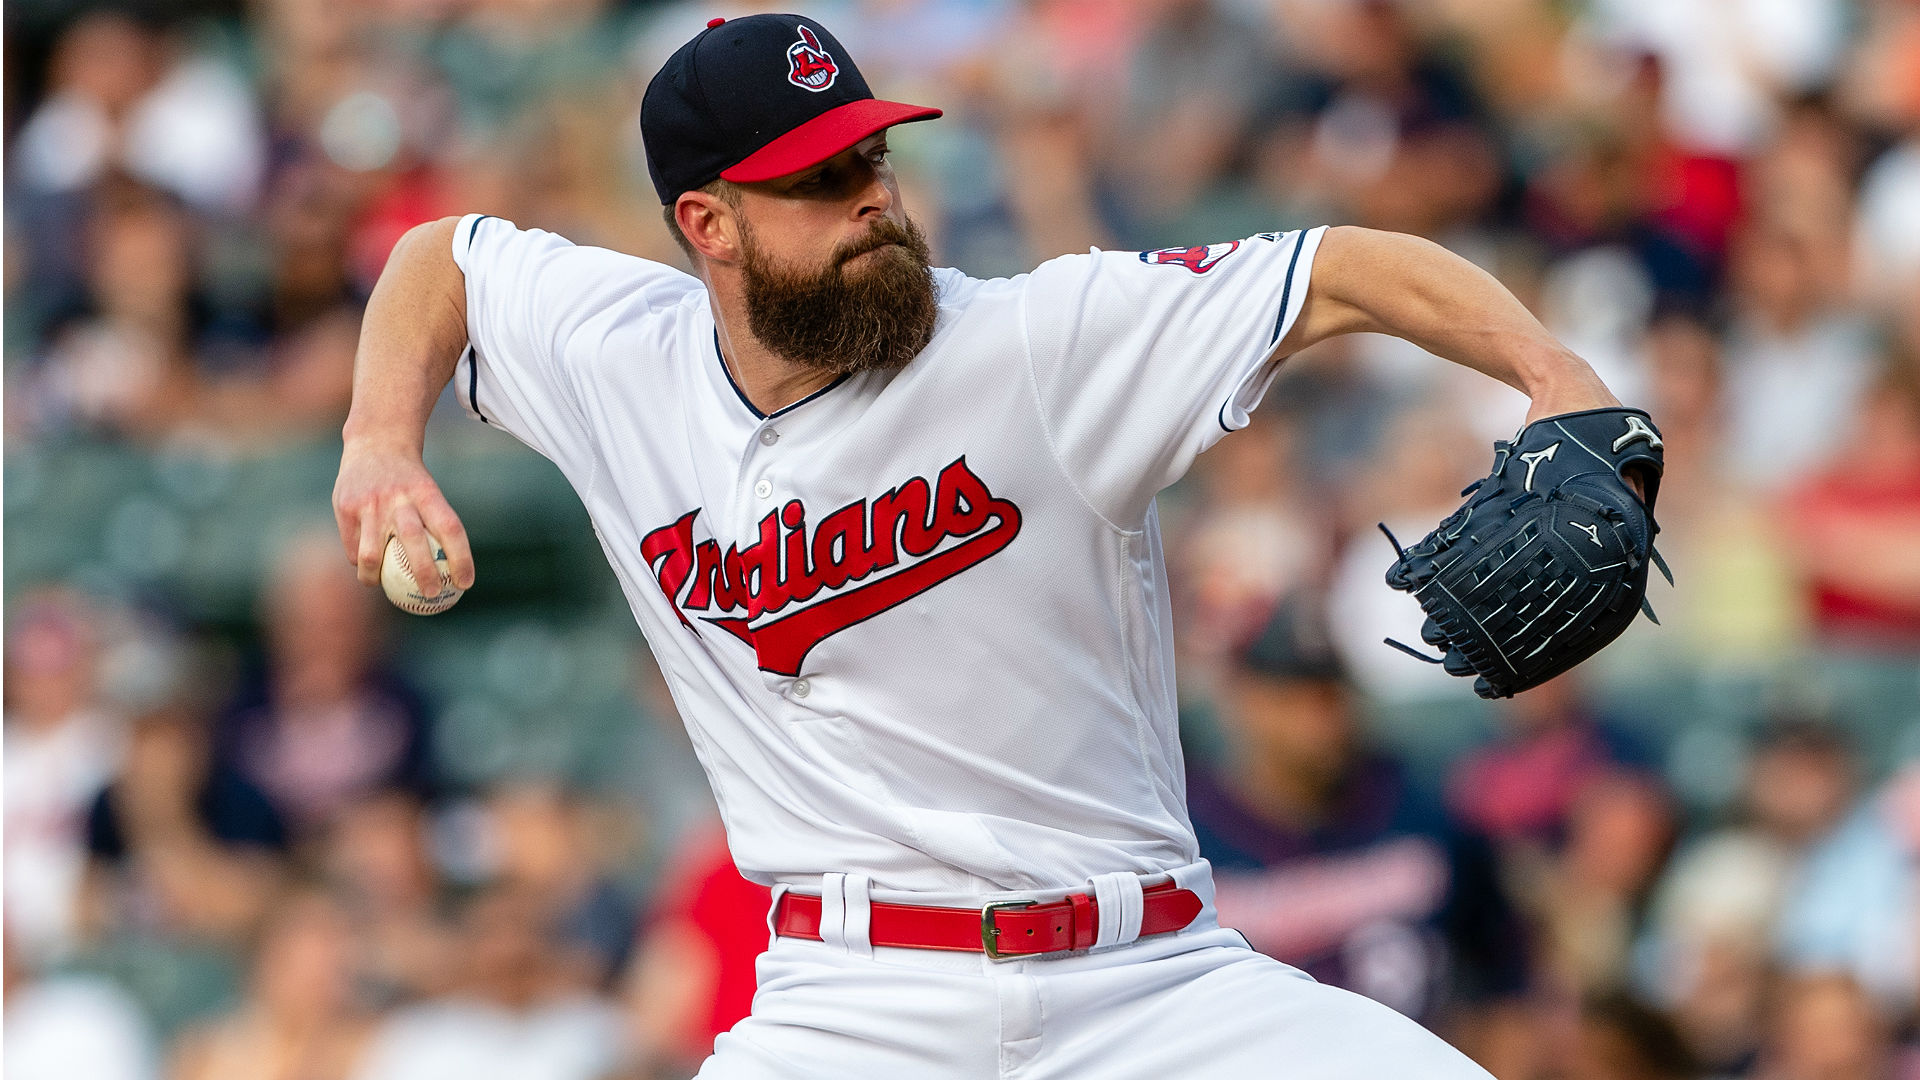 Indians continue to discuss dealing SP Kluber